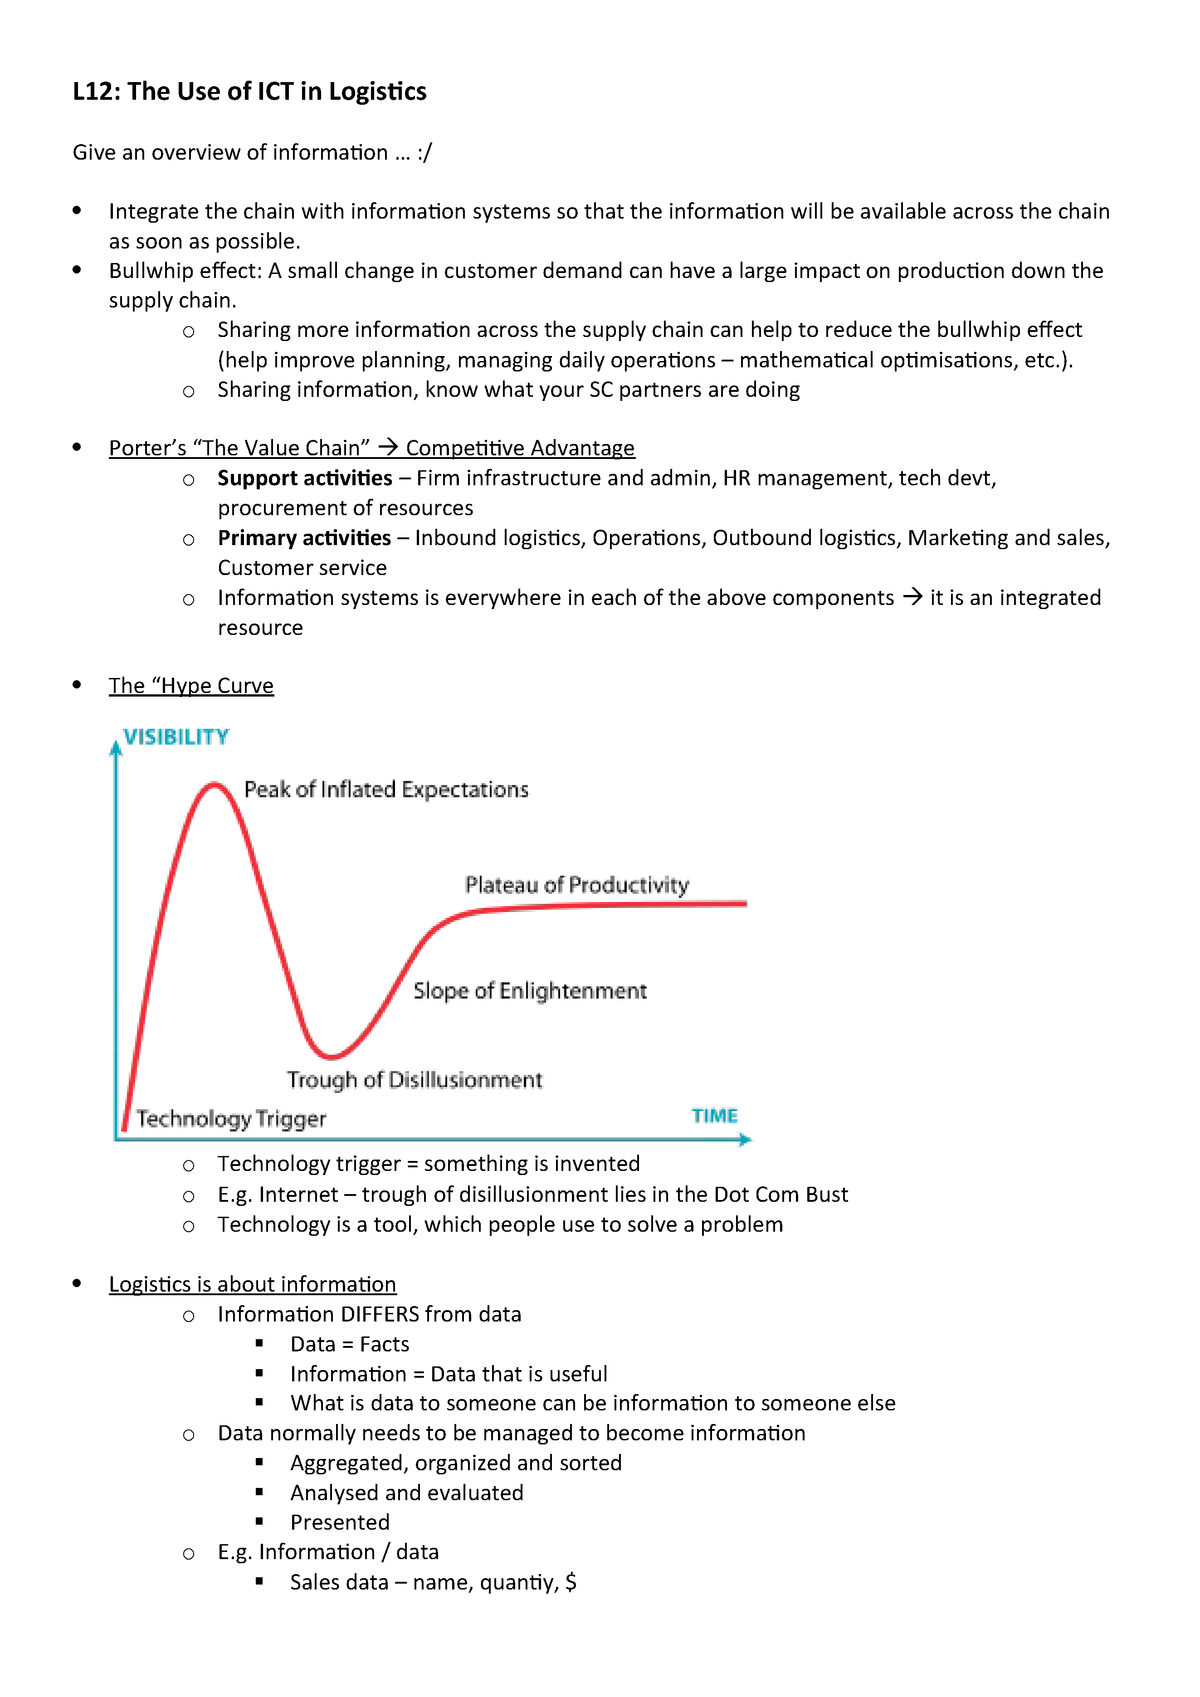 Lecture notes - The use of ICT in Logistics - Integrerad Logistik